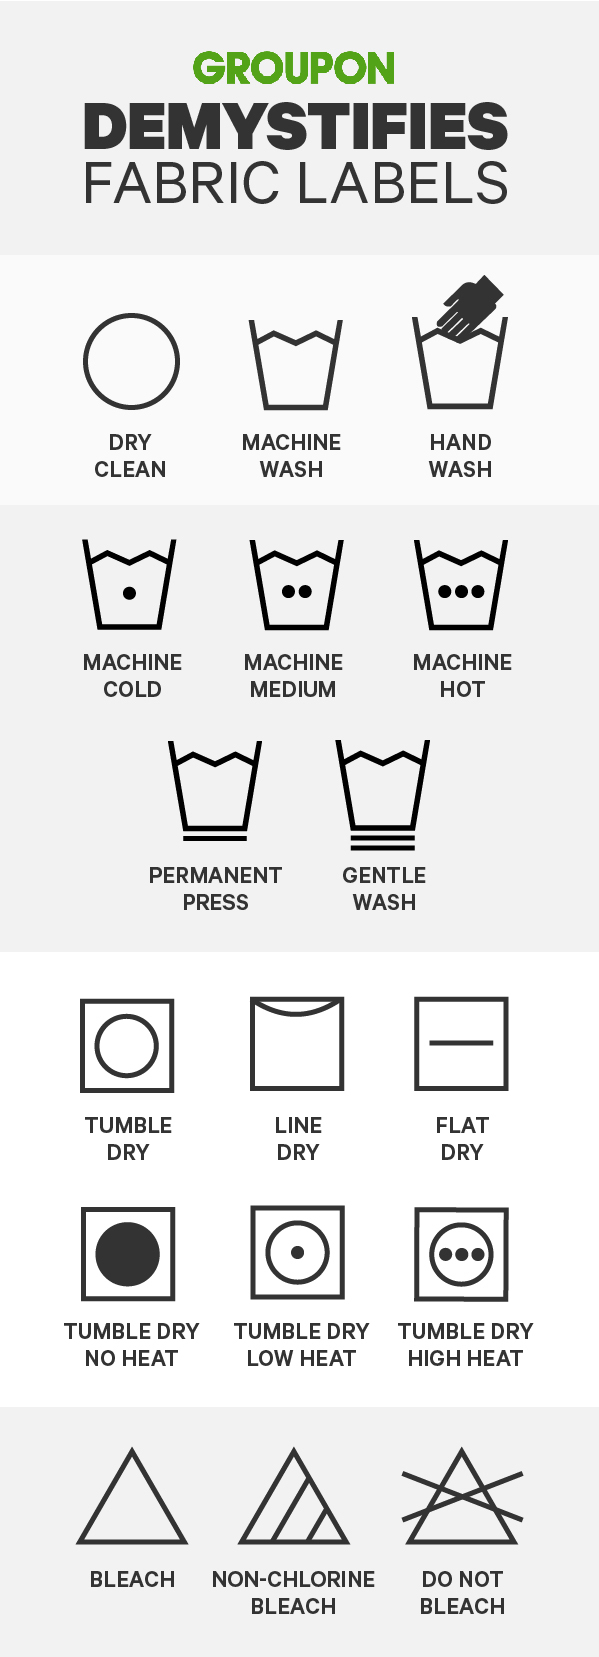 How To Do Laundry By Fabrics